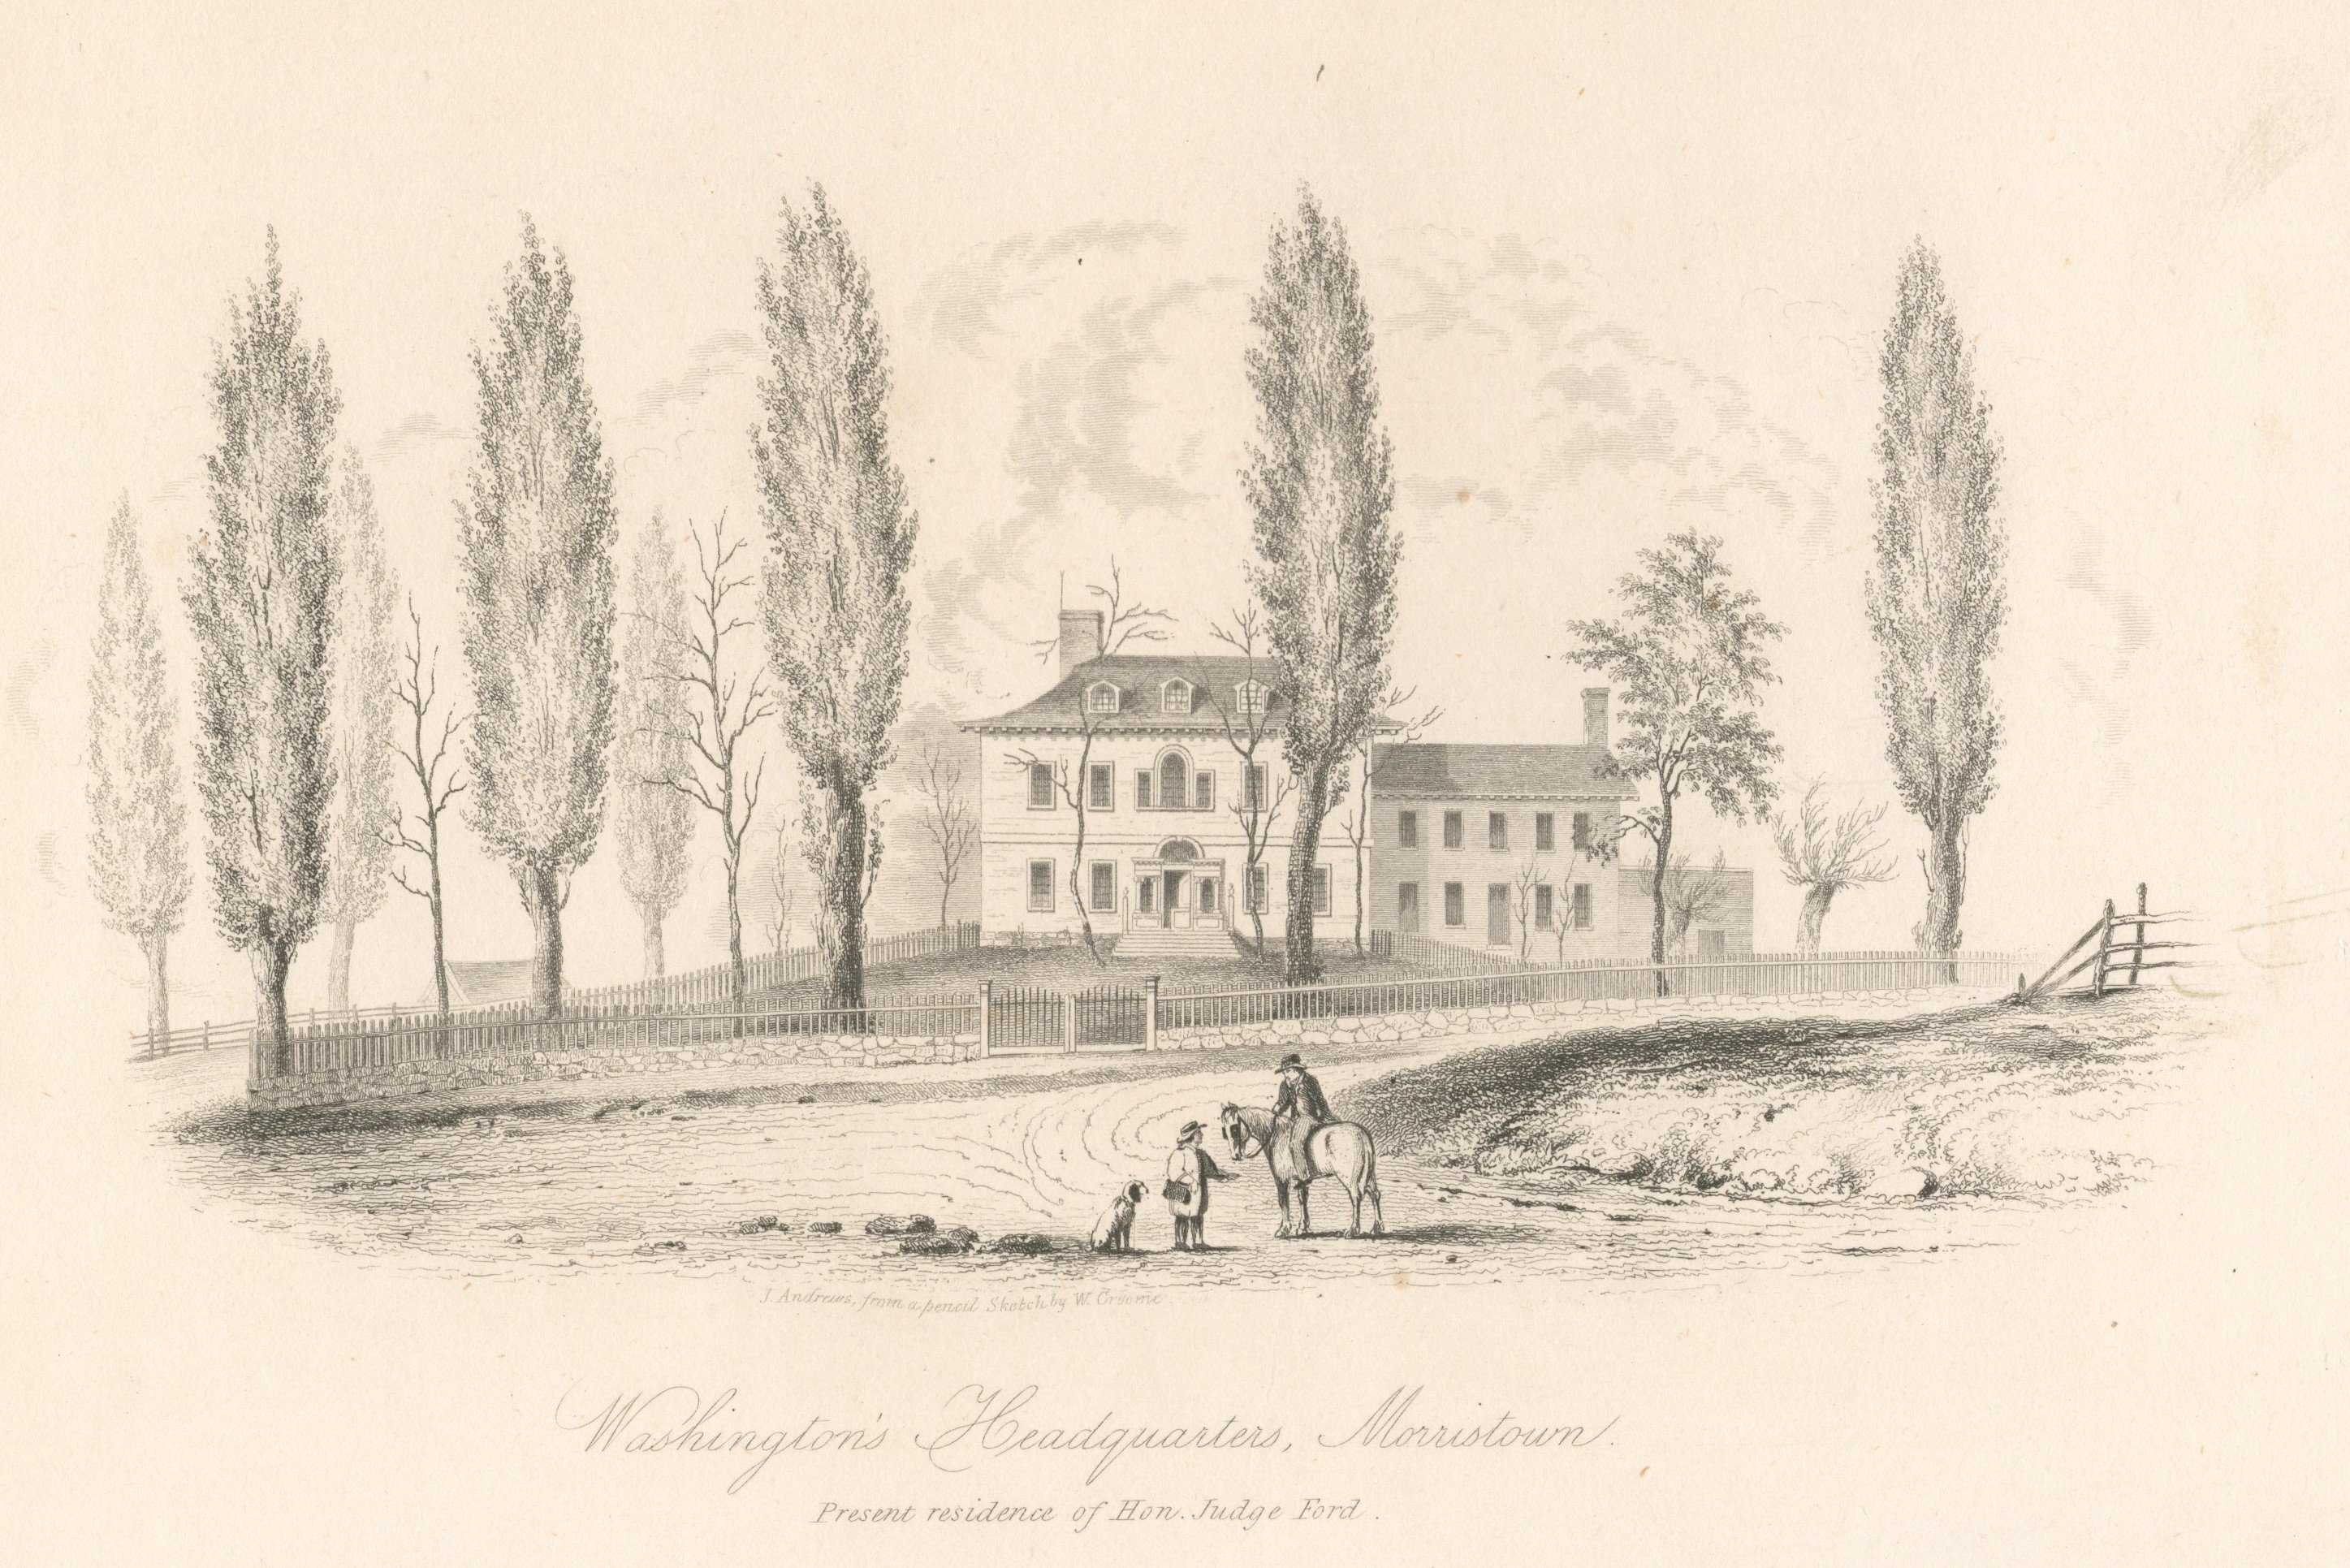 19th century engraving of Ford's Mansion by artists William Croome and Joseph Andrews. The Ford family would continue to live in this house after Washington's departure until the 1870s when it was sold to auction. Image from digital commons